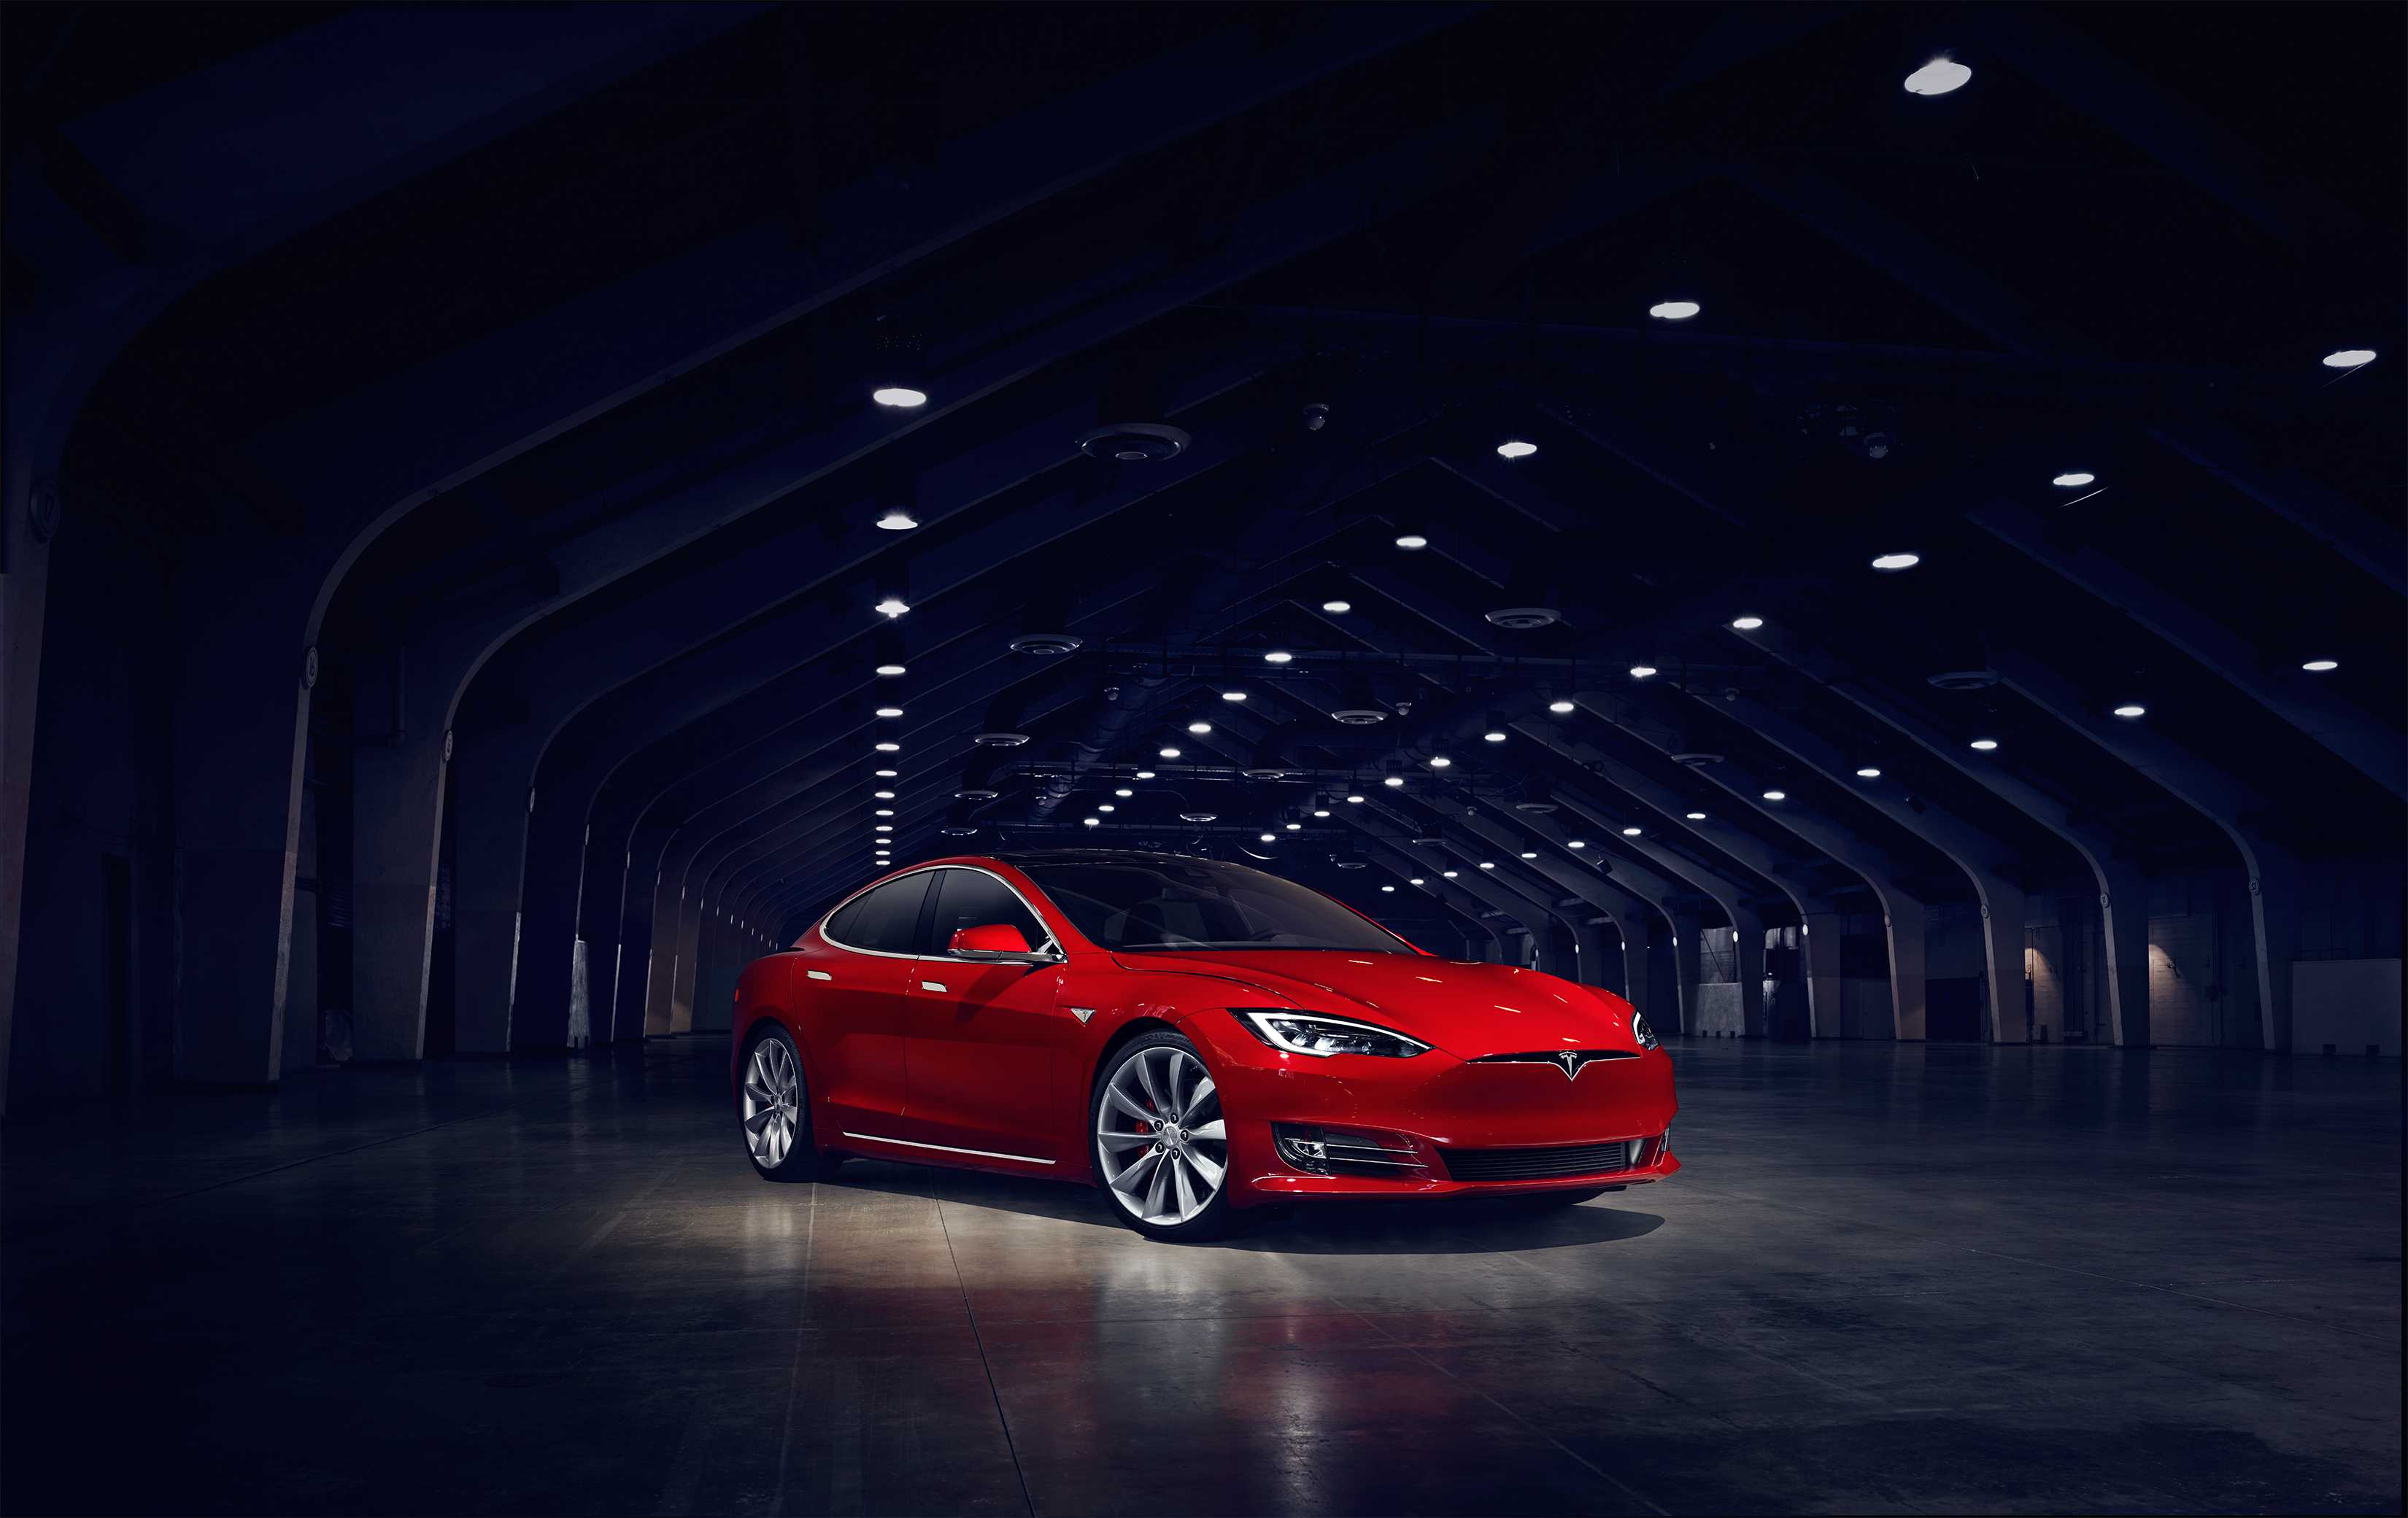 Tesla is updating the look of the Model S to make it more closely align with the Model X SUV. It announced Thursday, June 9, 2016 plans to offer a cheaper option of the Model S.